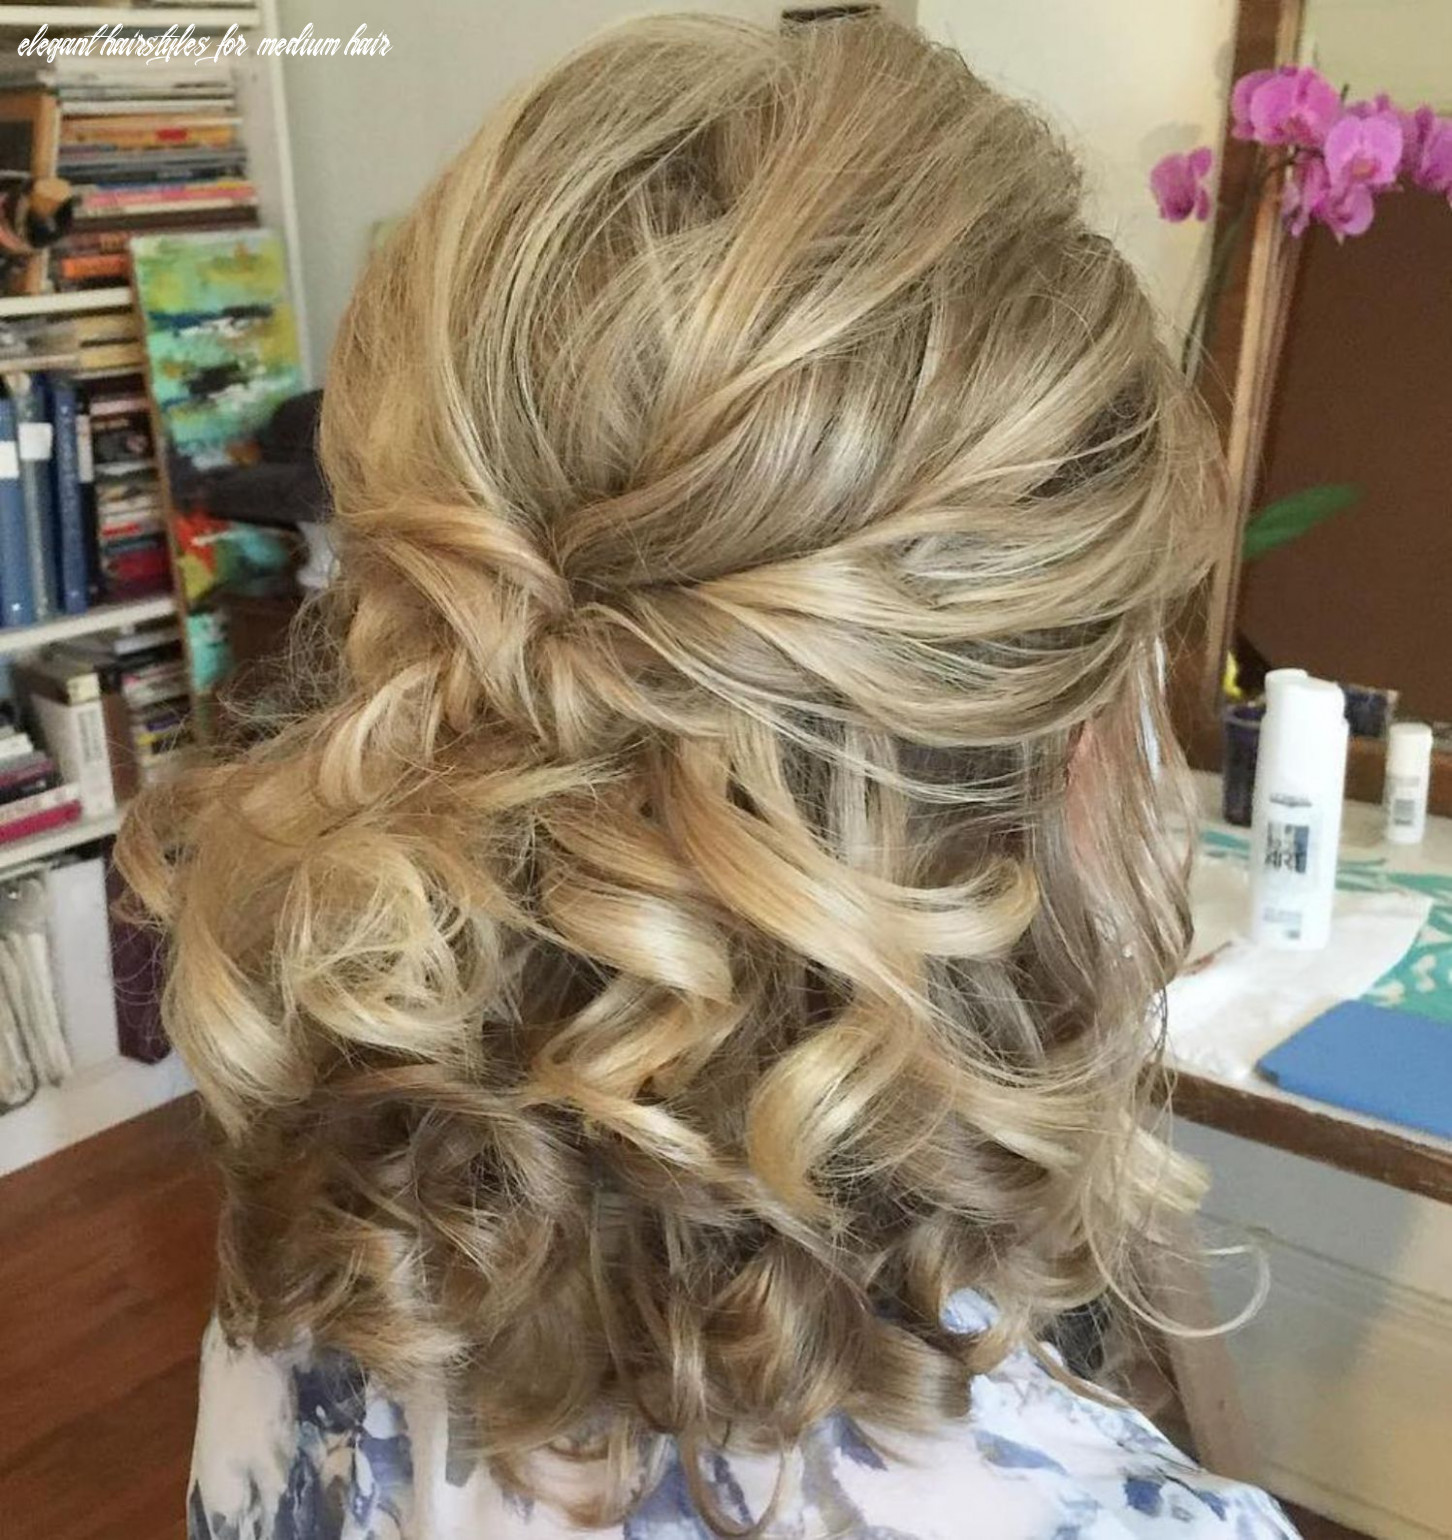 11 half updos for your perfect everyday and party looks   mother